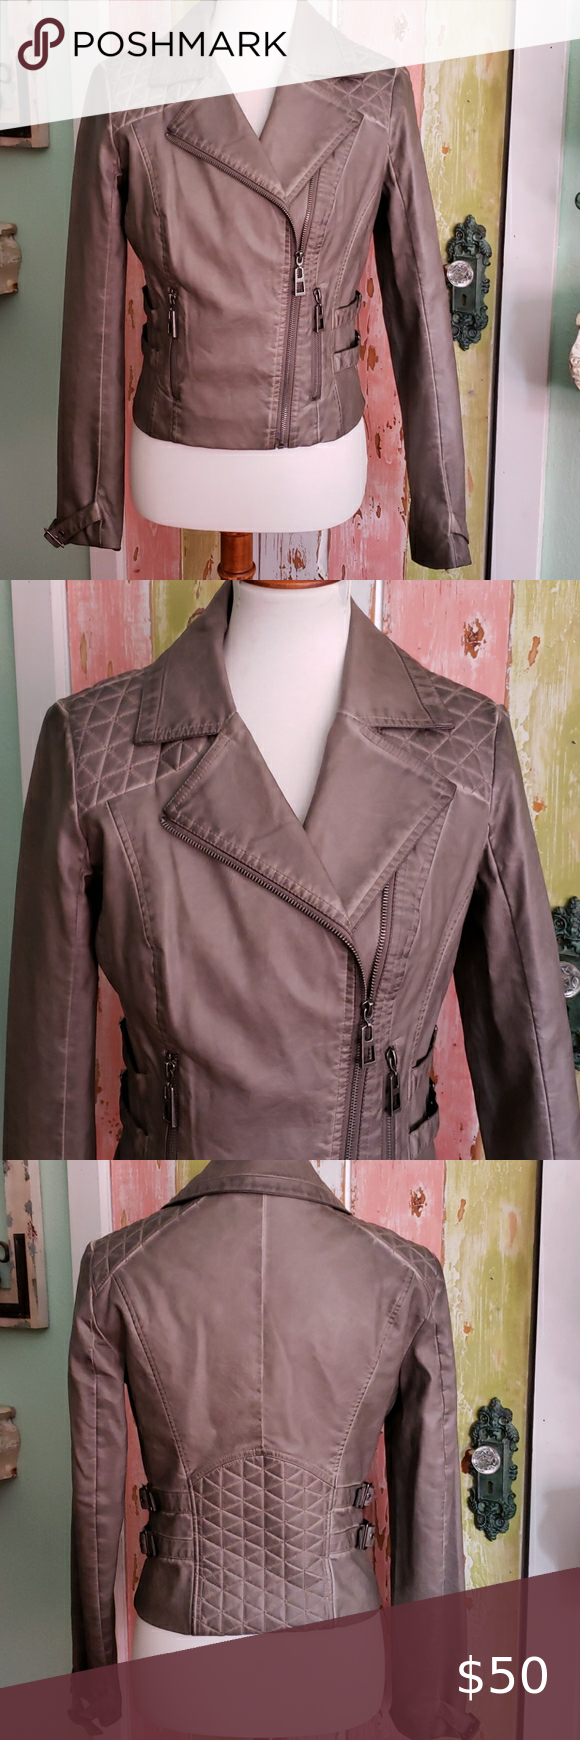 Grey quilted leather biker jacket medium In excellent like-new condition! This i...#biker #condition #excellent #grey #jacket #leather #likenew #medium #quilted